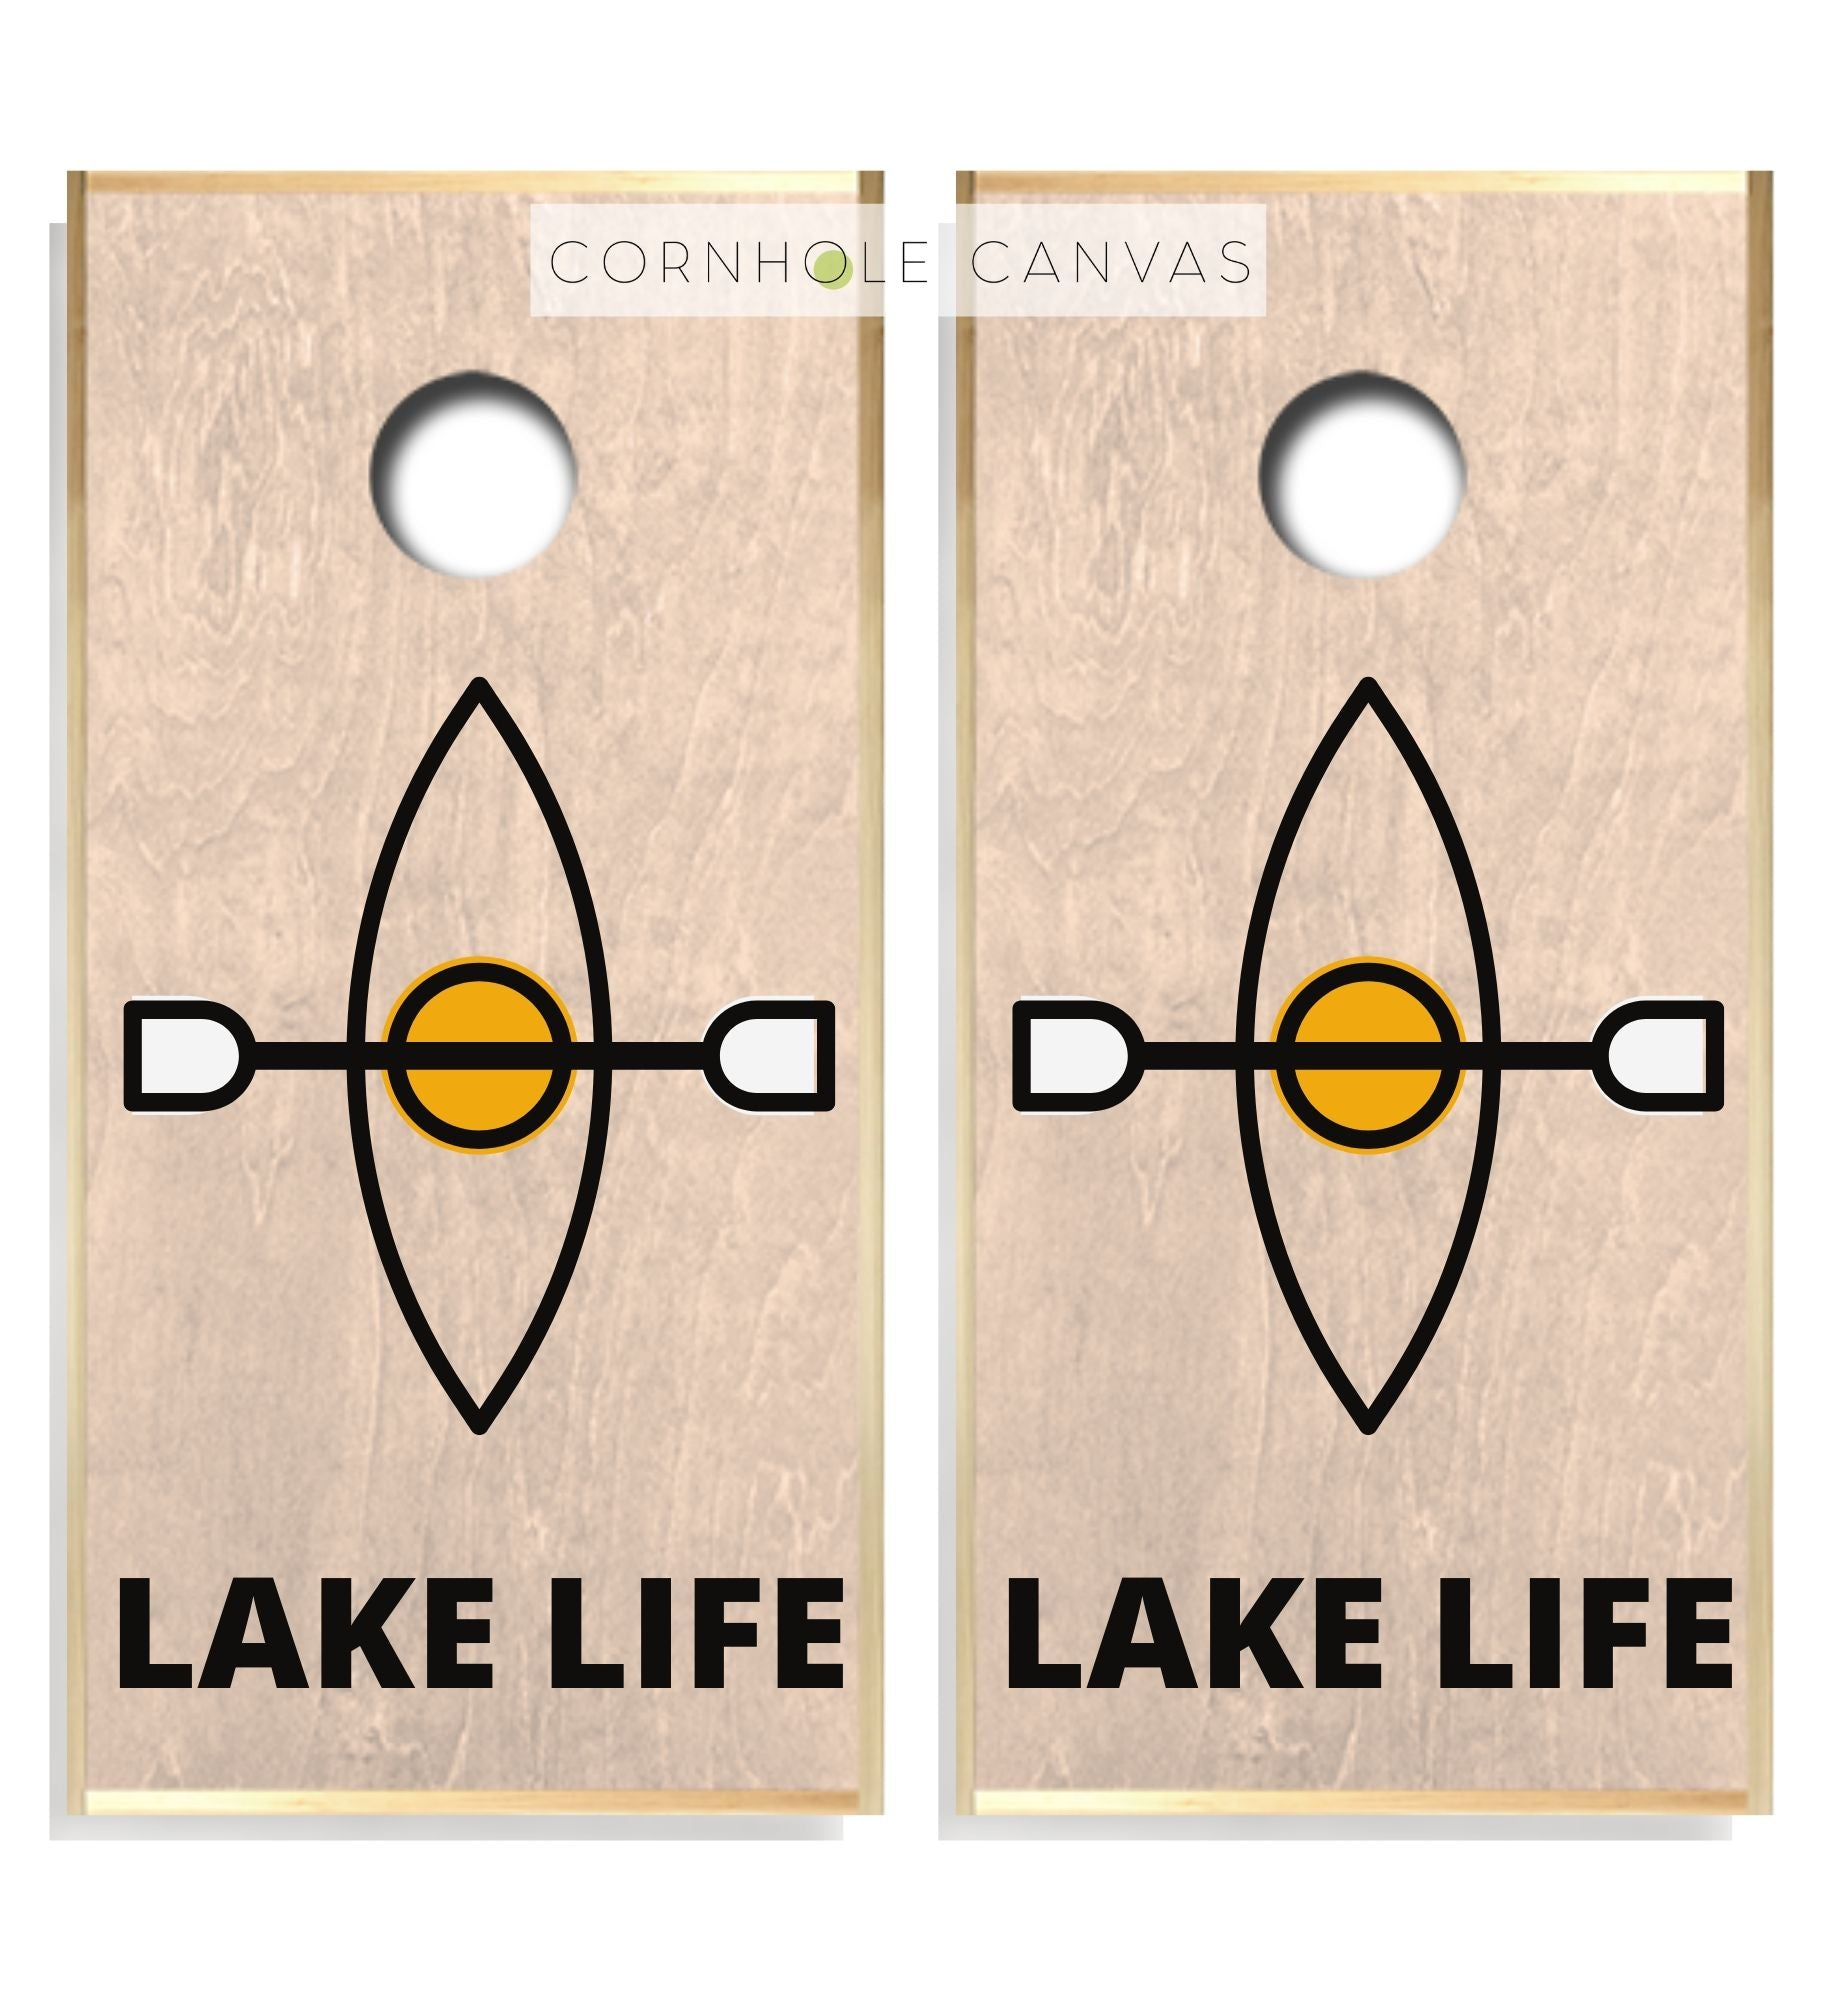 Regulation canoe lake theme cornhole boards. Customizable premium quality cornhole set.